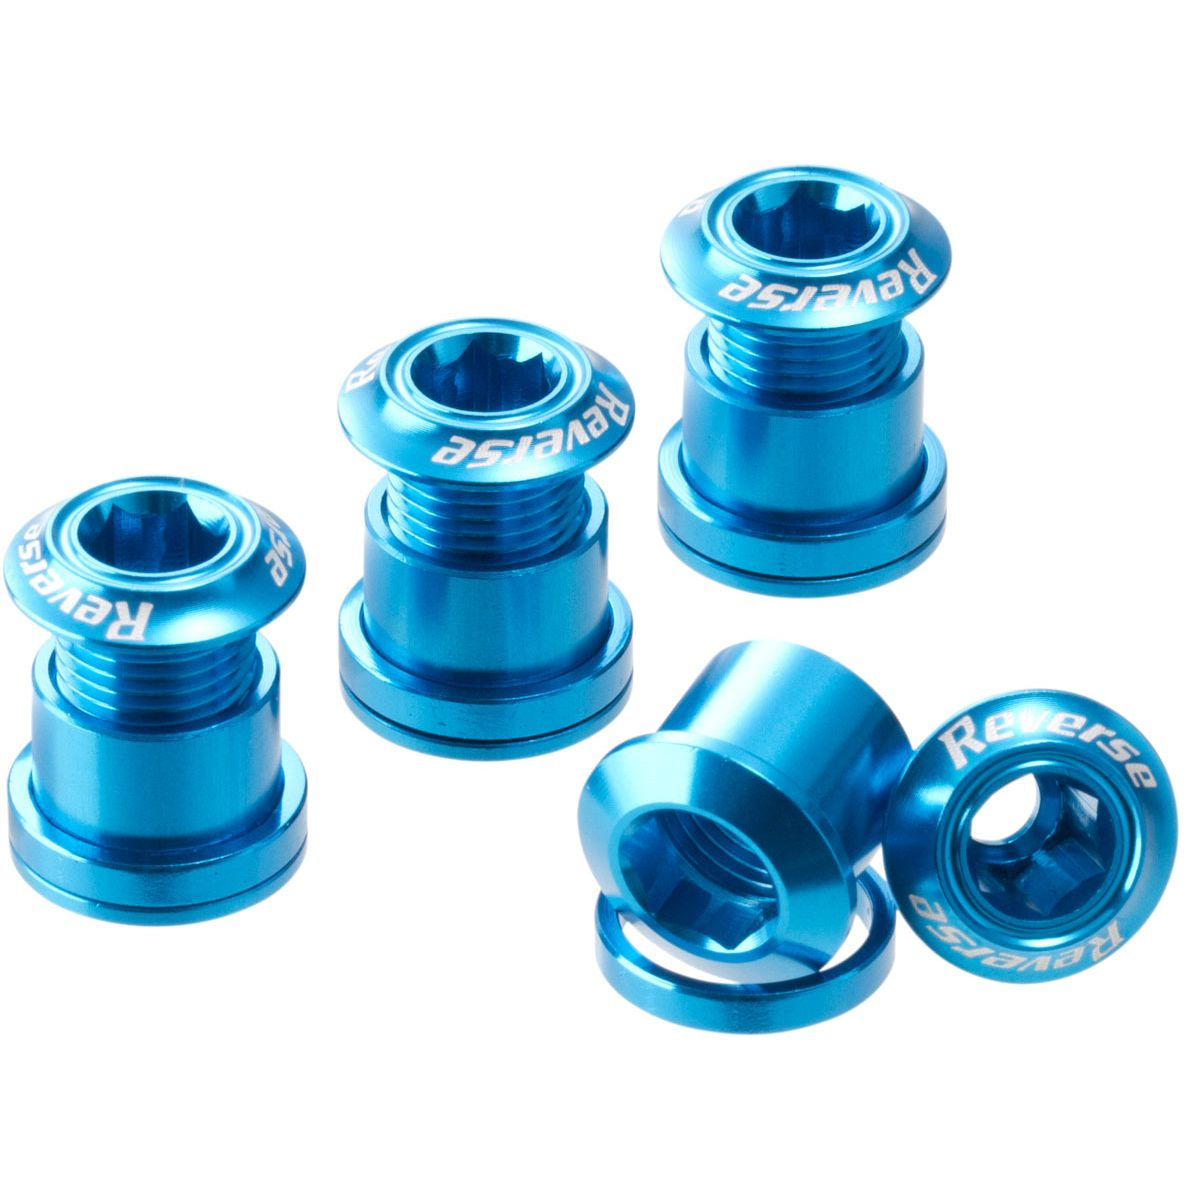 Reverse chainring bolts set of four | Chainring bolt